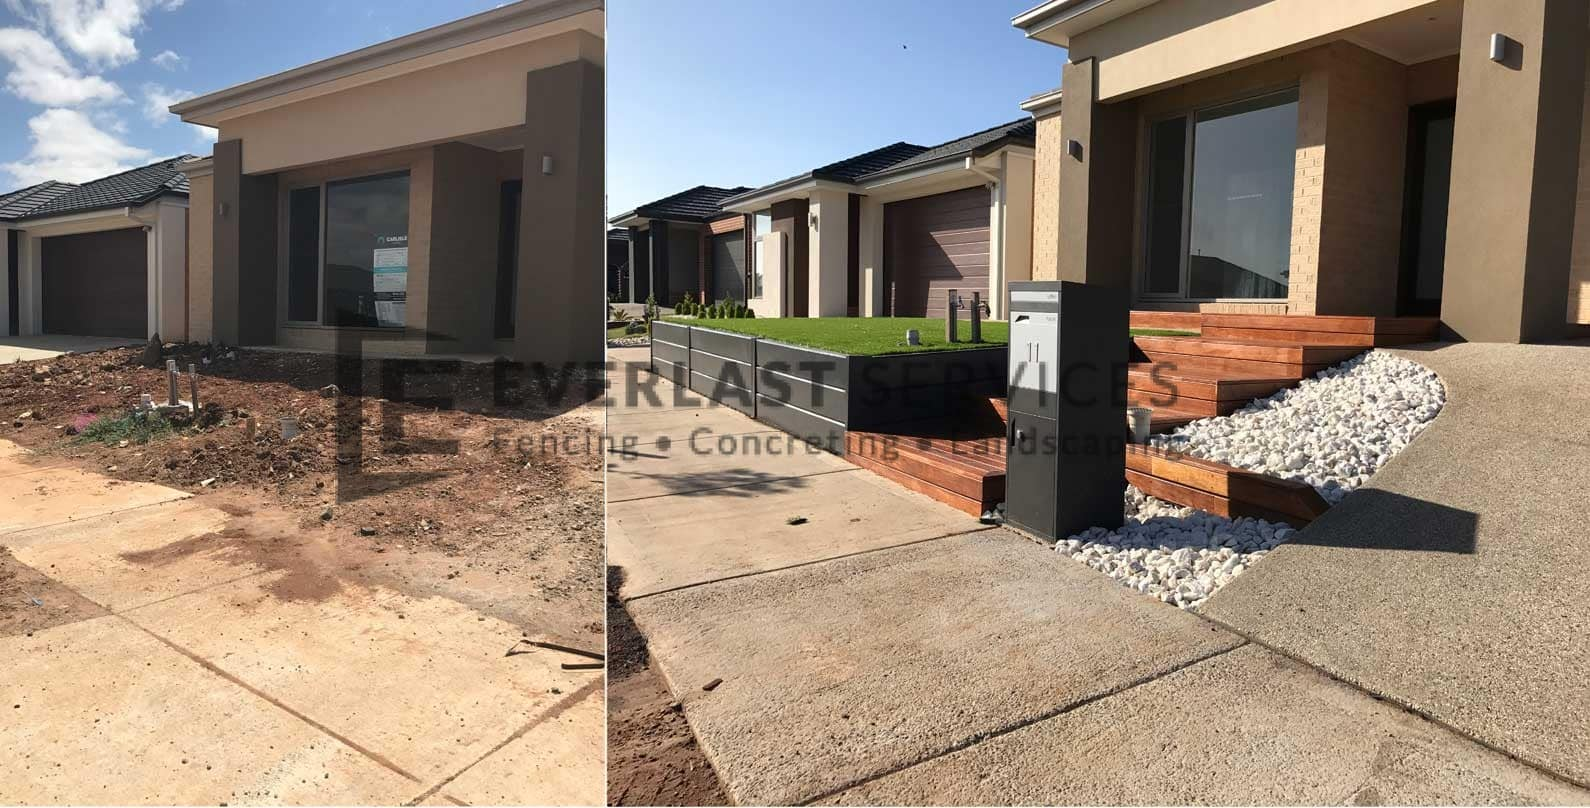 L61 - Merbau Decking Stairs + Concrete Retaining Wall + Exposed Aggregate Driveway